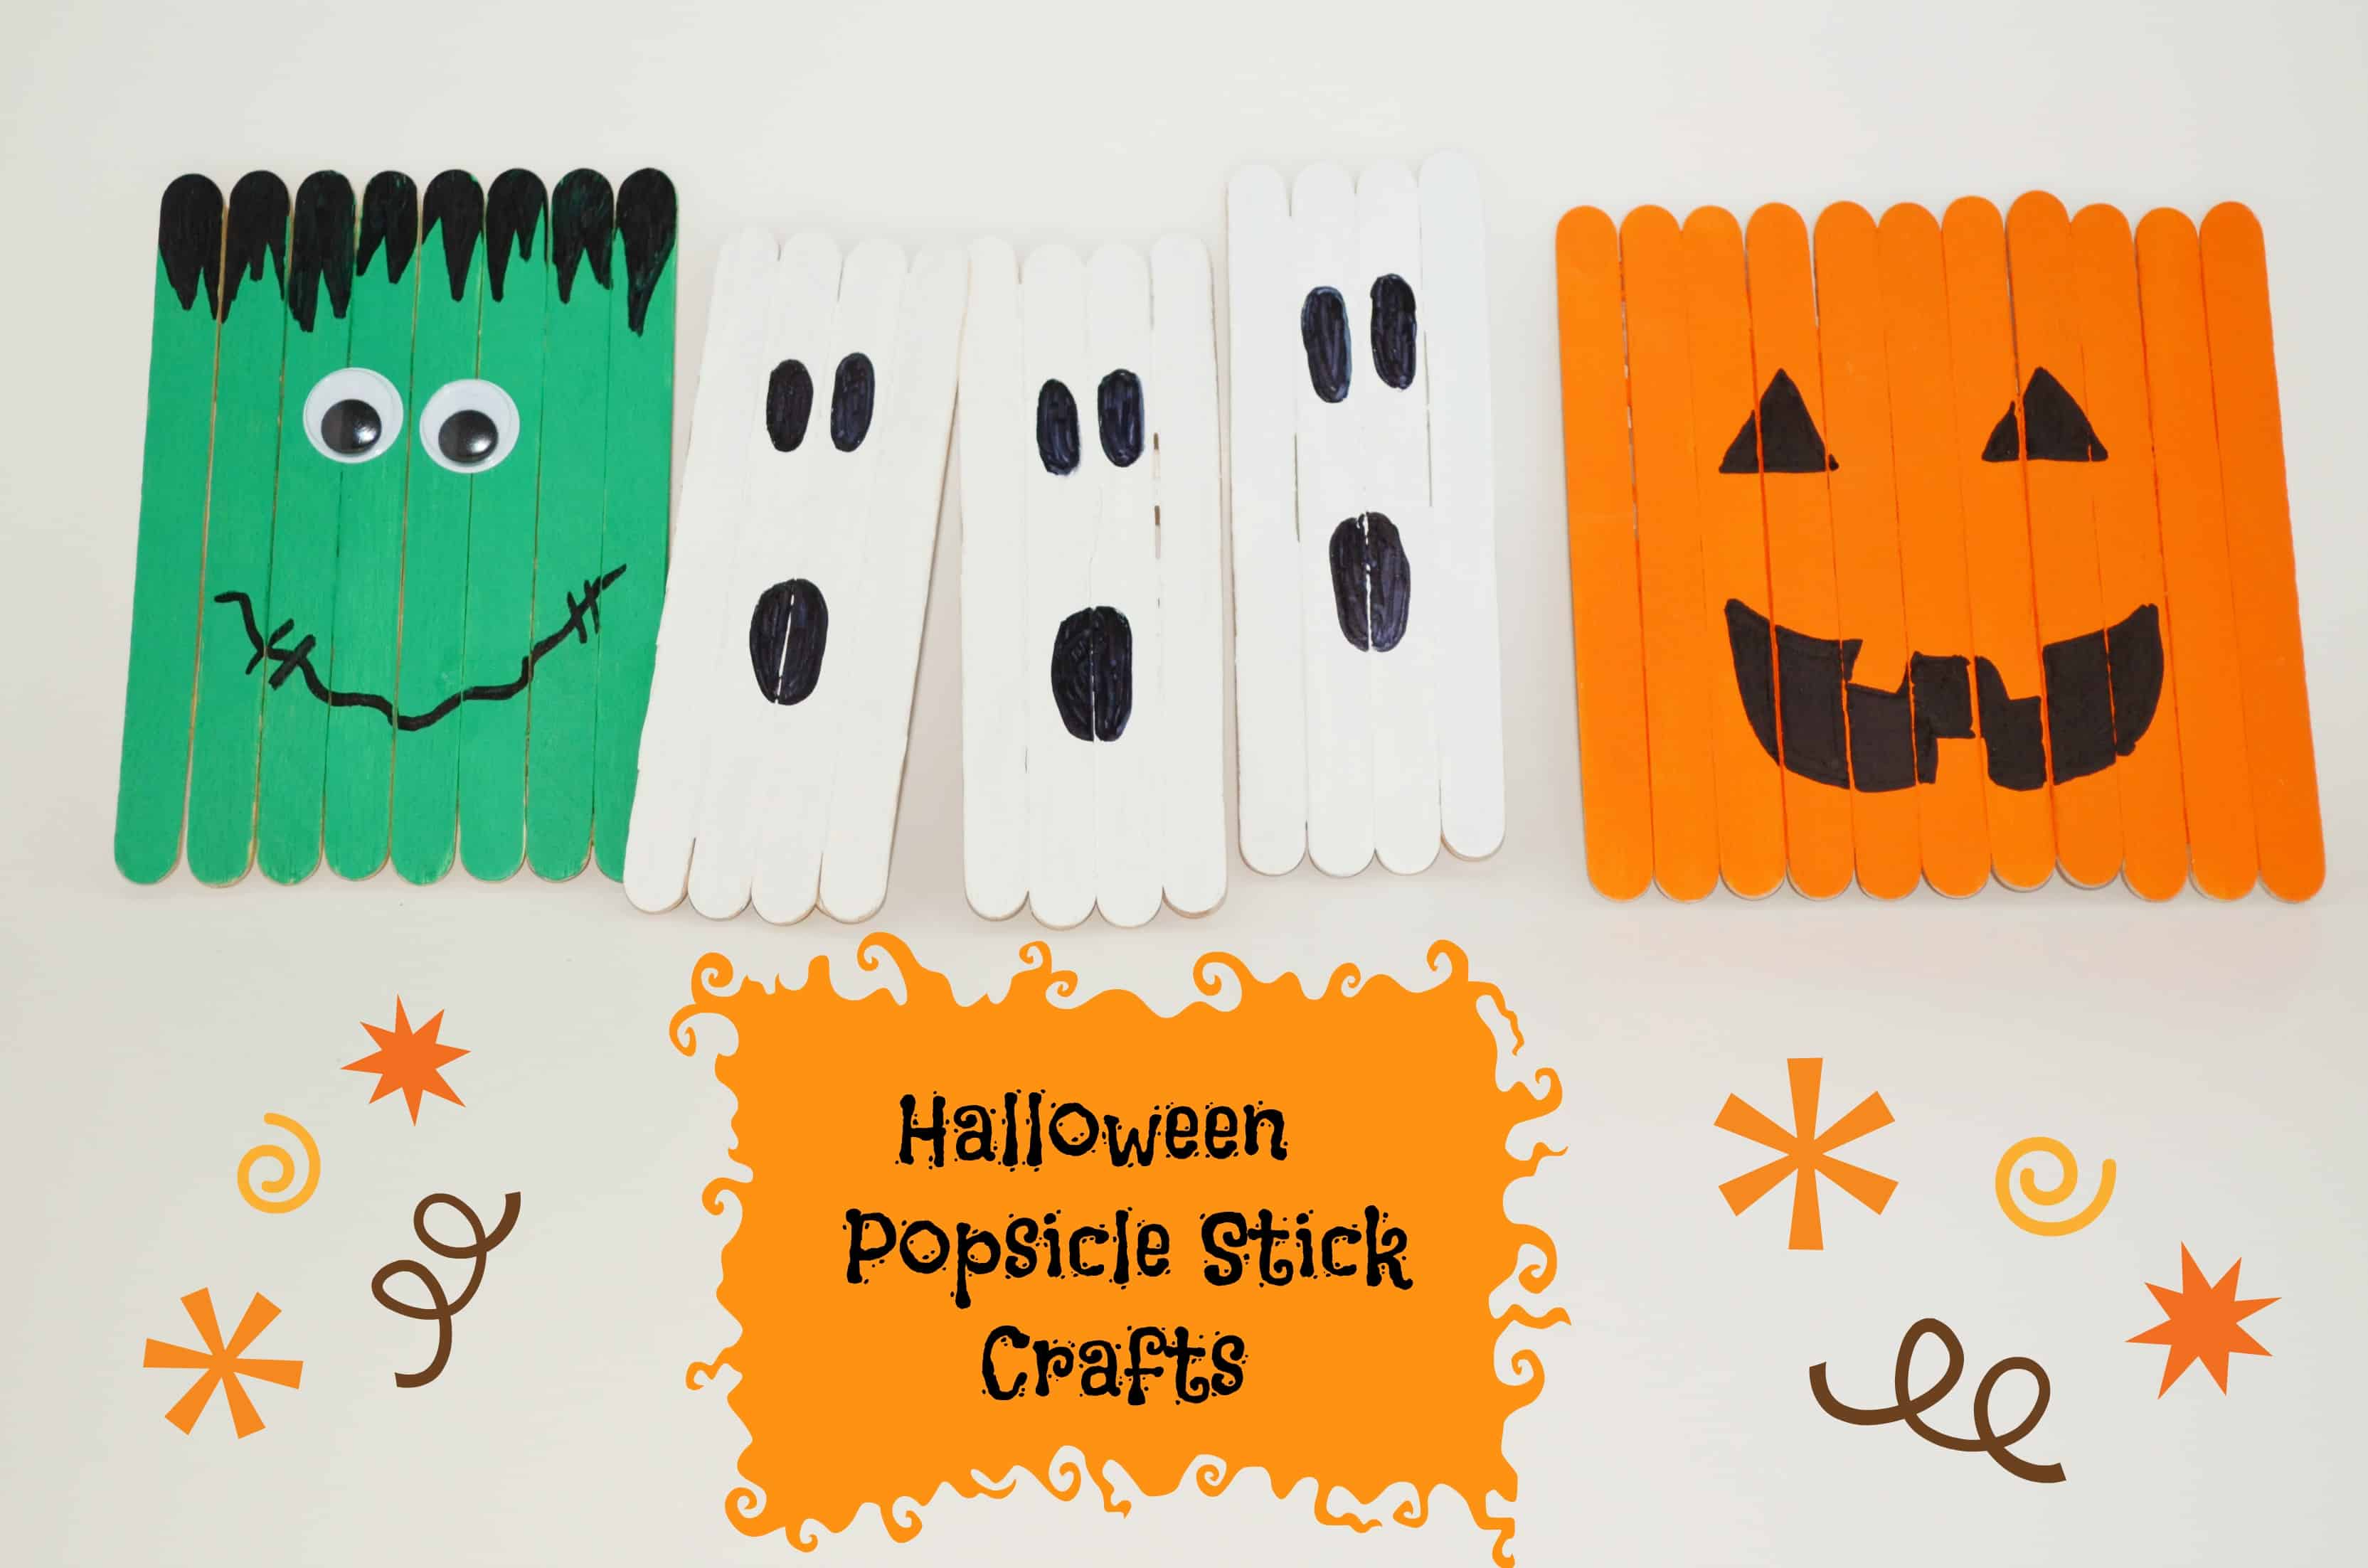 Halloween Crafts with Popsicle Sticks for Kids